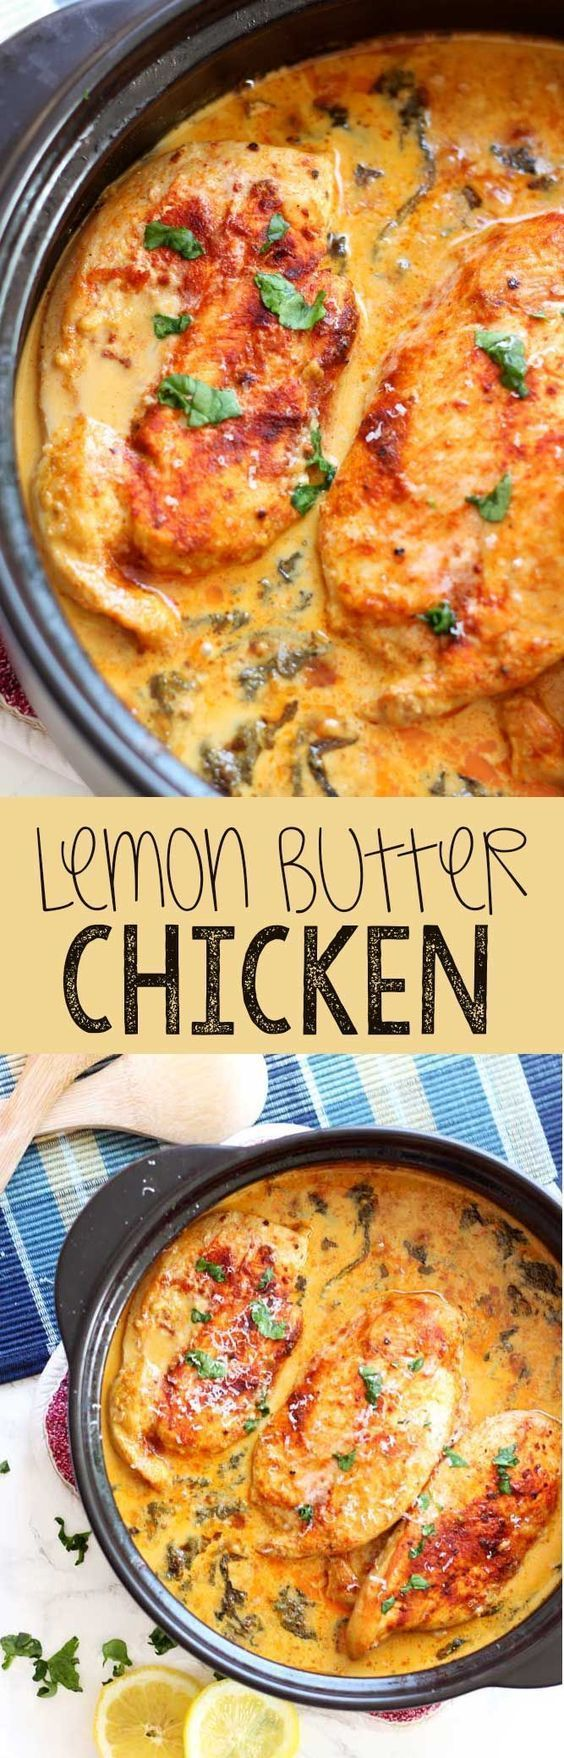 30 Minute Lemon Butter Chicken Dinner Recipe via Eazy Peazy Mealz - Easy chicken dinner, this lemon butter chicken is savory, mouthwatering, and easy to get on the table! - The BEST 30 Minute Meals Recipes - Easy, Quick and Delicious Family Friendly Lunch and Dinner Ideas